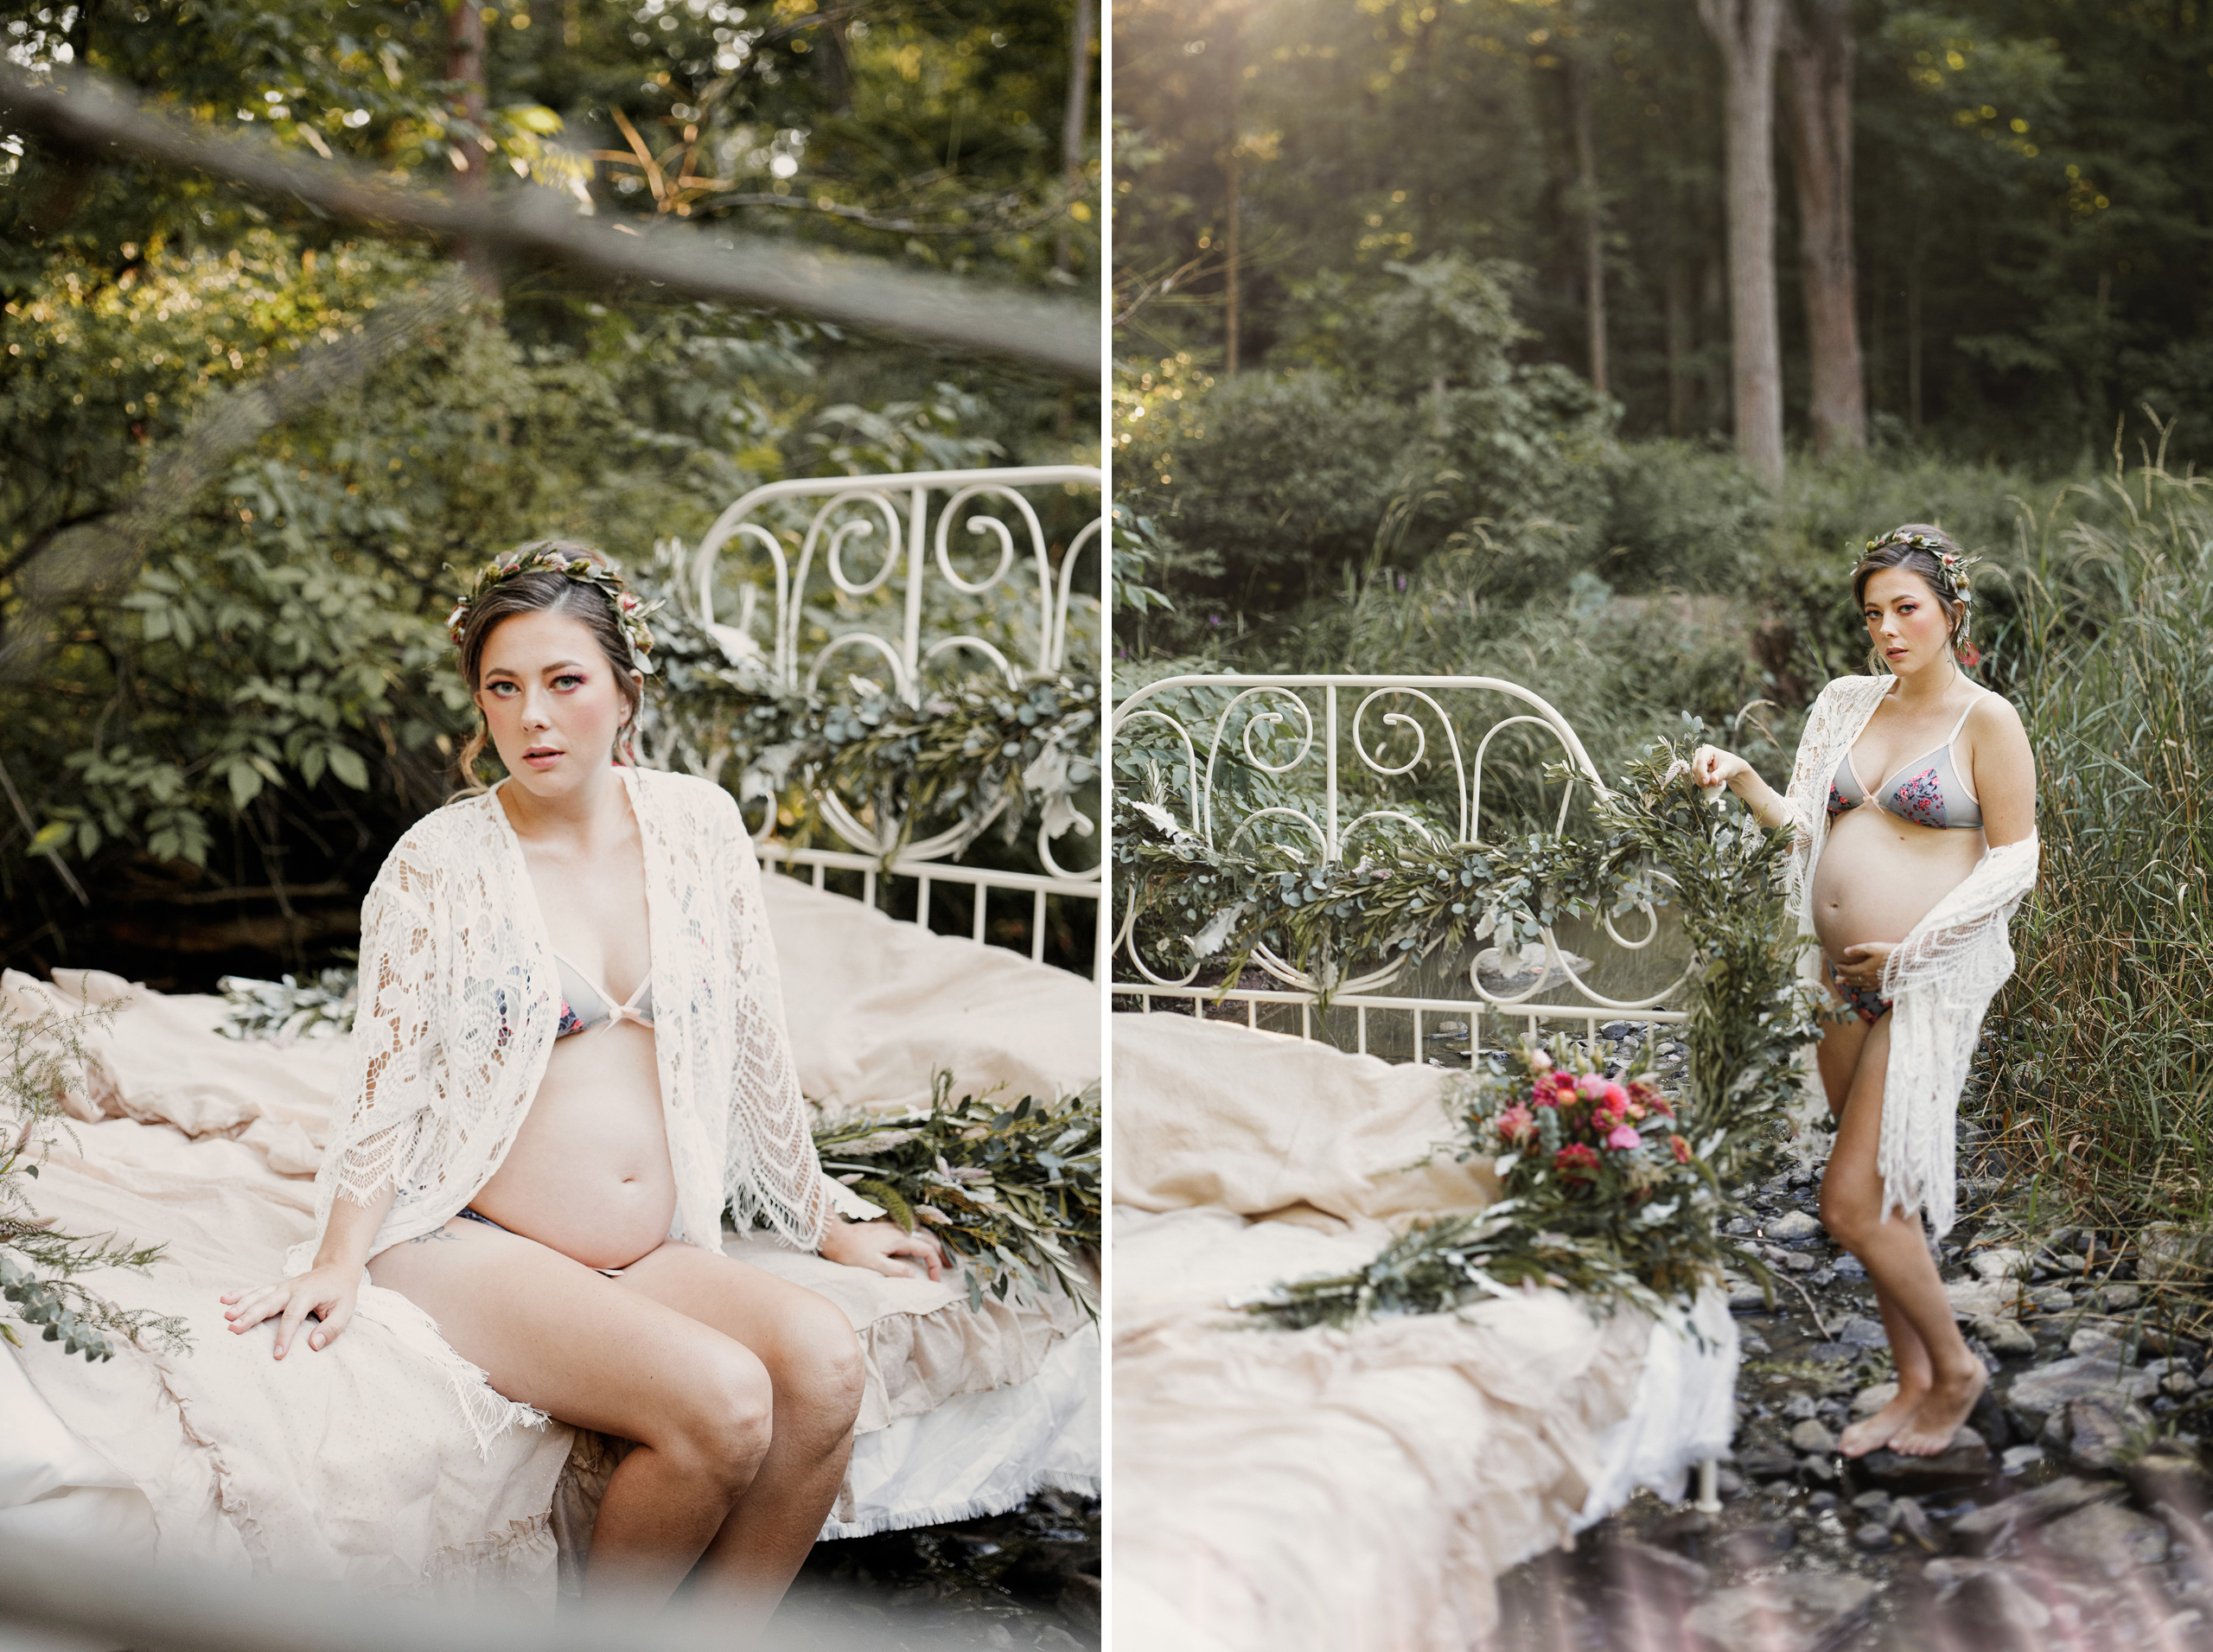 feeder flower farm southcoast beauty co niagara boudoir maternity photographer afterglow